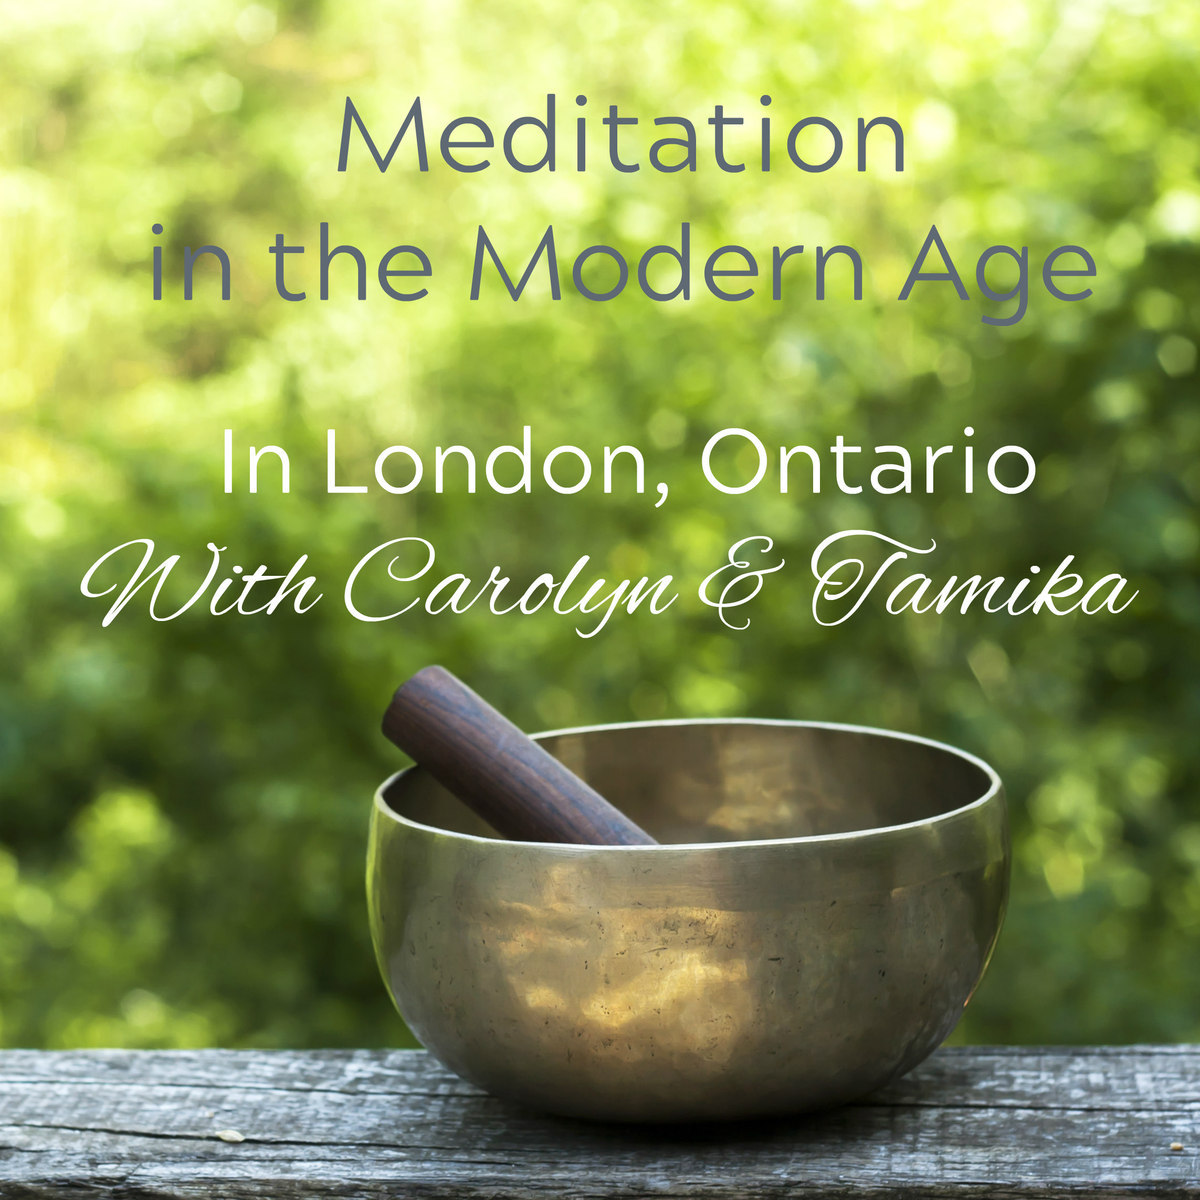 Teaching Meditation in the Modern Age in London, Ontario, July 9-August 9